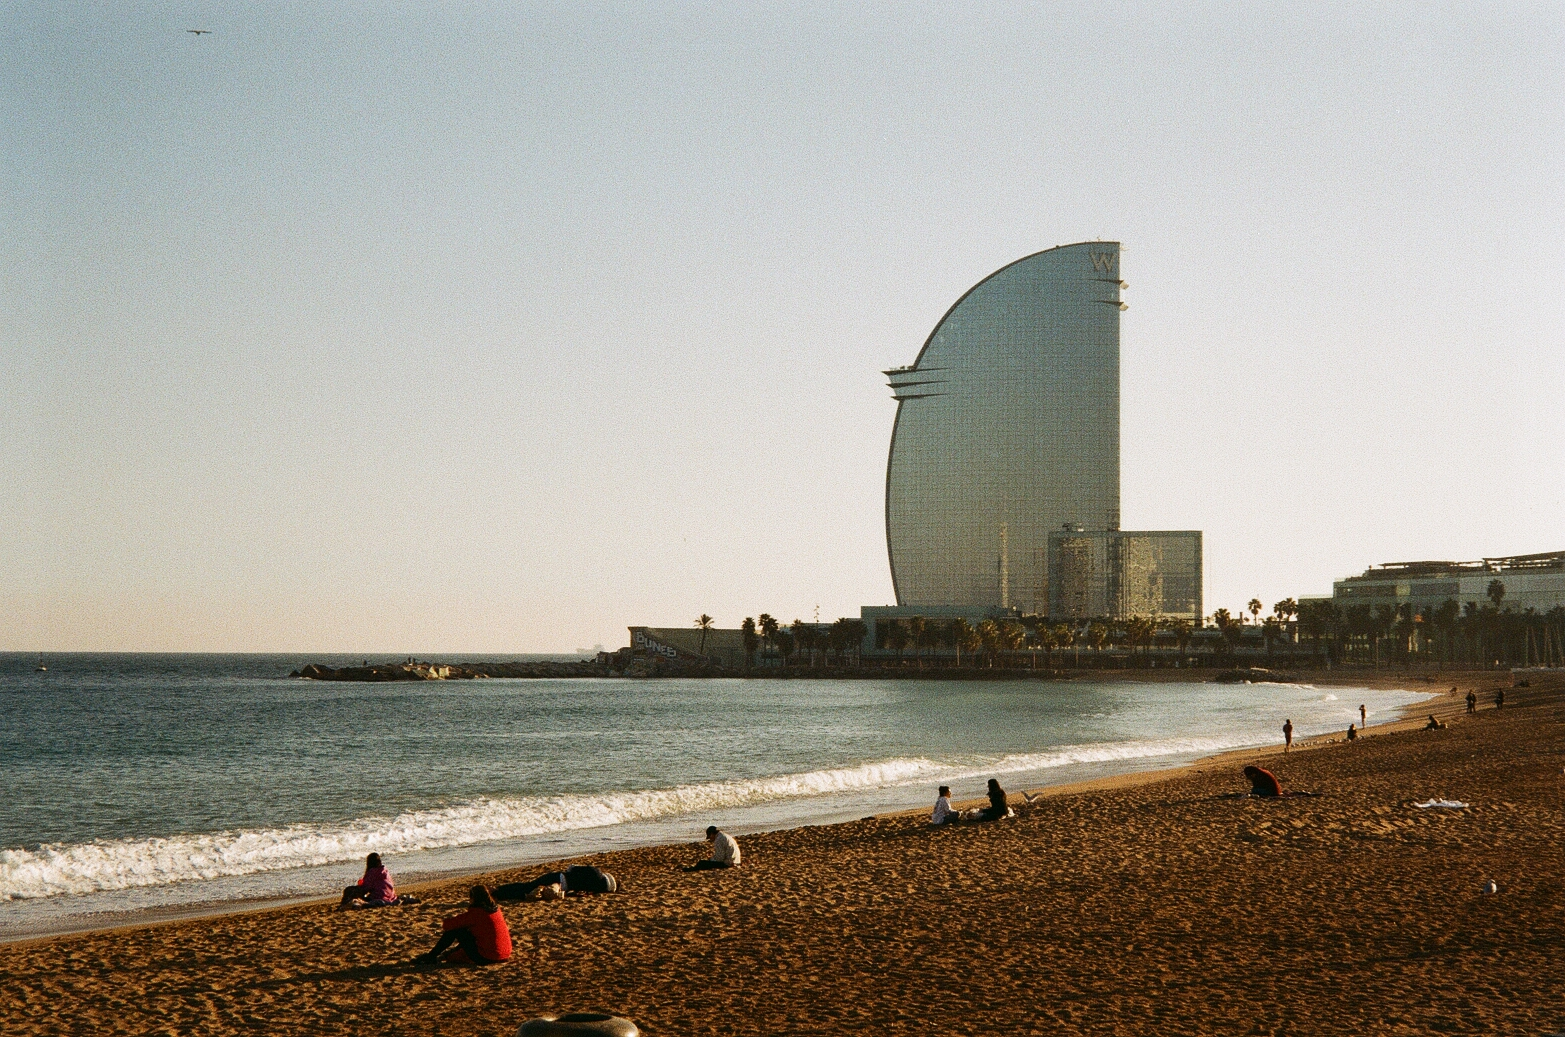 Film photo of Barcelona Beach with the famous W hotel in the background, that is shaped like a fin.